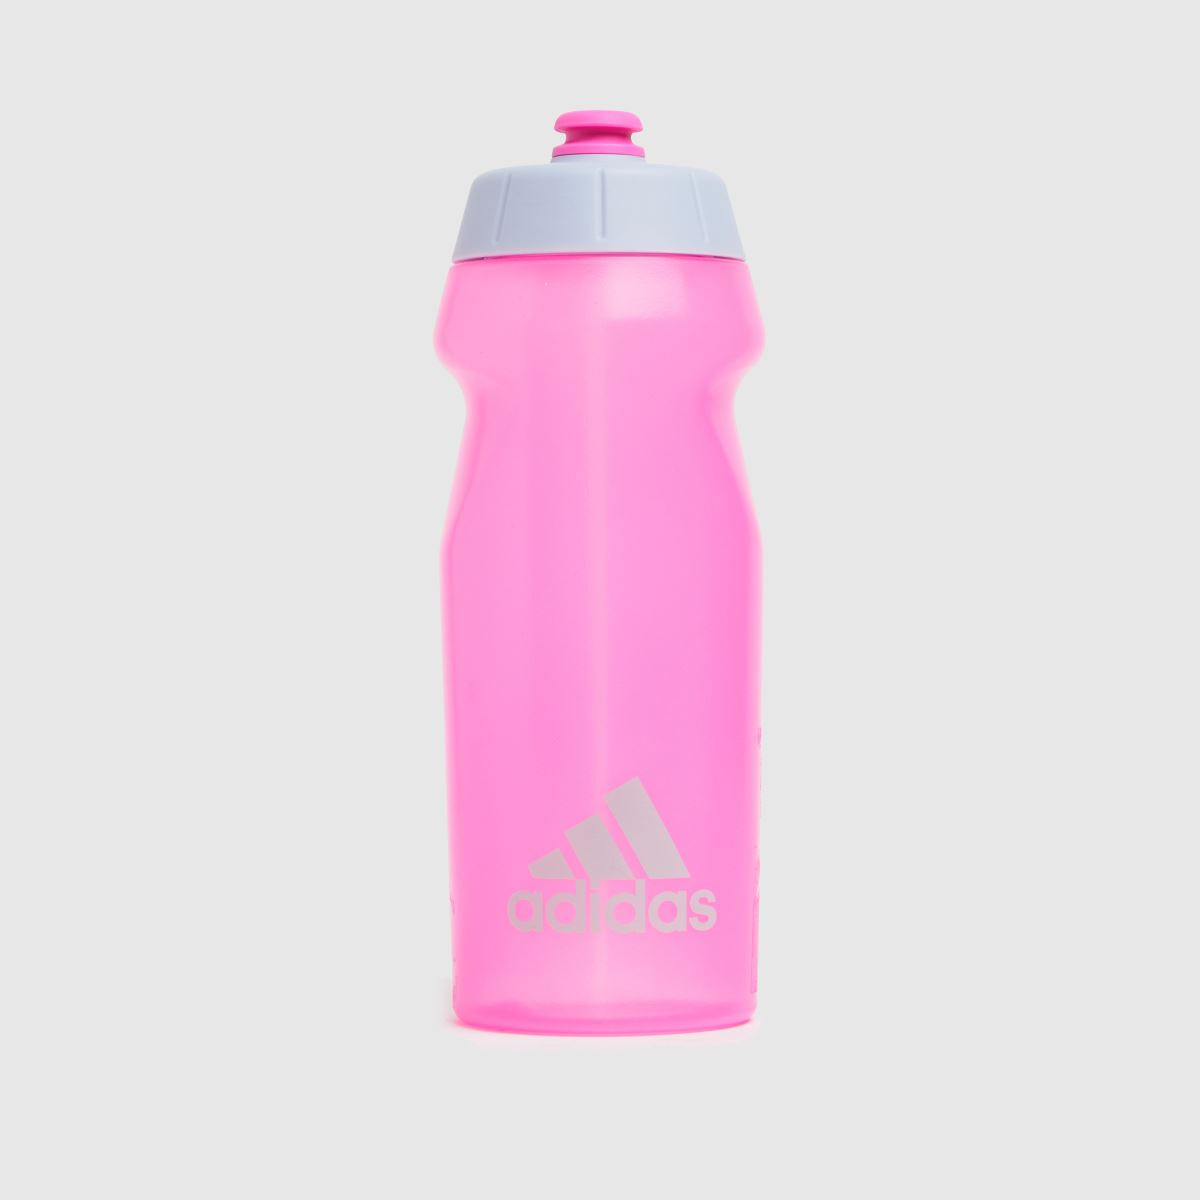 Adidas Pink Perf Bottle 0.5